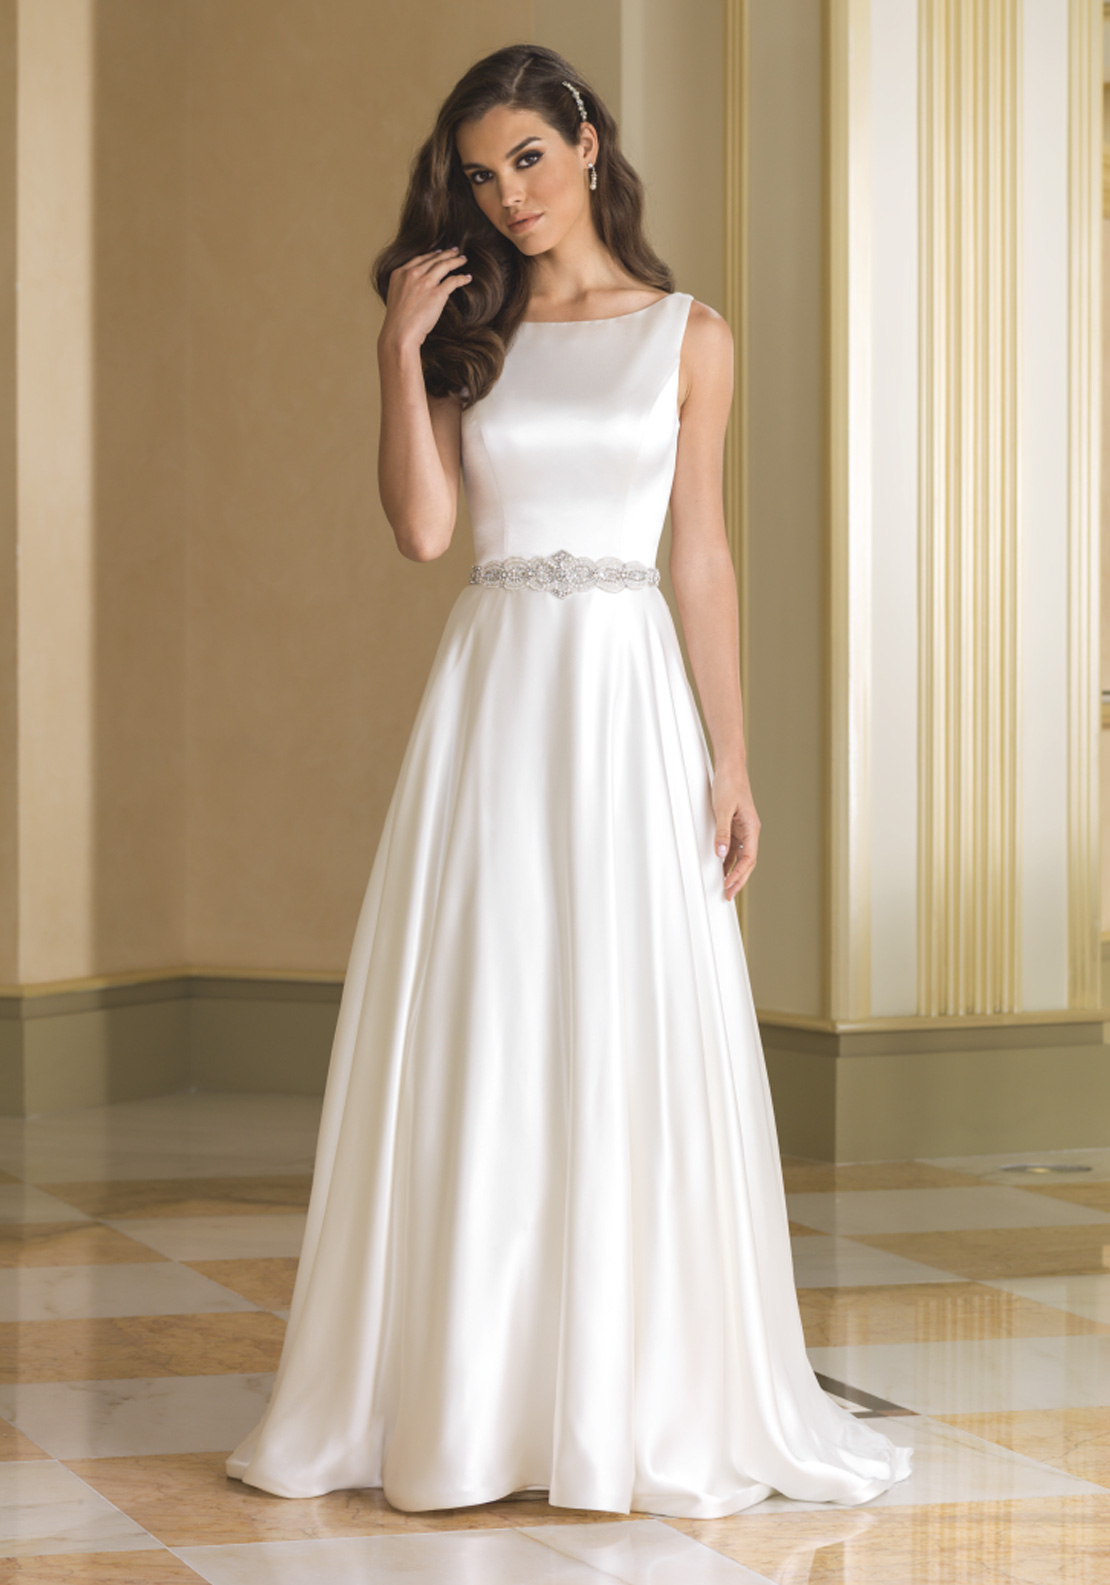 Justin Alexander 8866 Wedding Dress UK Size 14